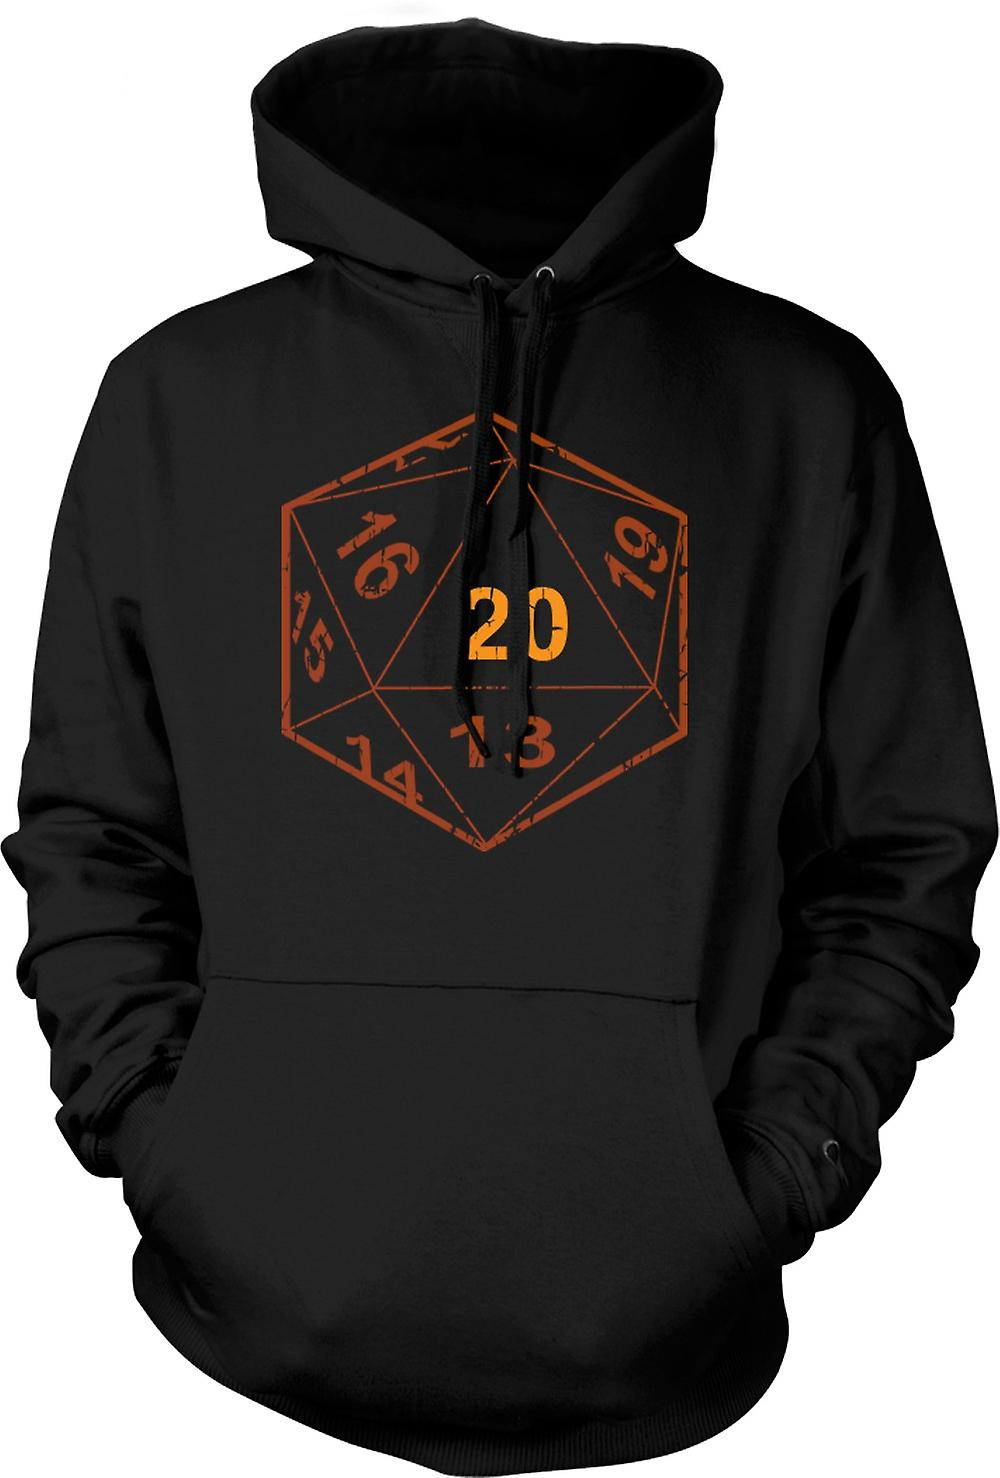 Mens Hoodie - Dungeons And Dragons D20 dadi - Gamer